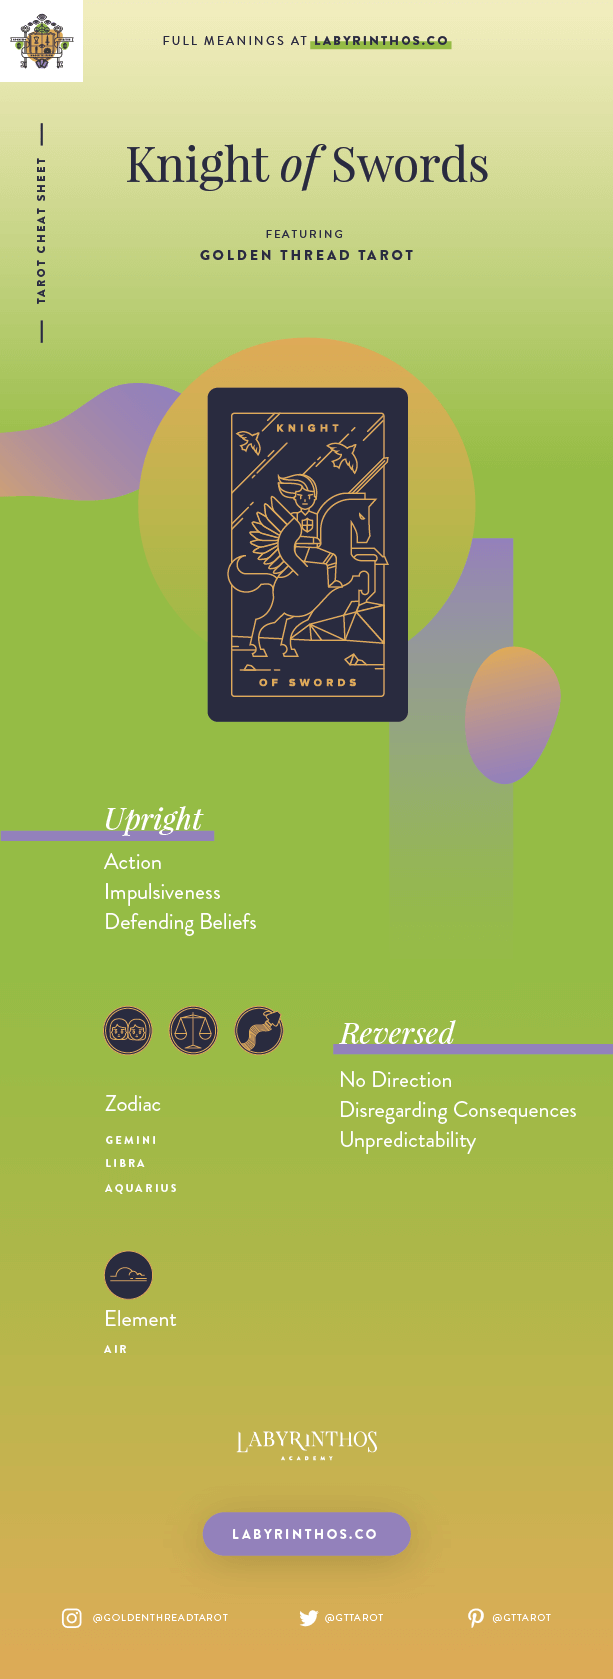 Knight of Swords Meaning - Tarot Card Meanings Cheat Sheet. Art from Golden Thread Tarot.